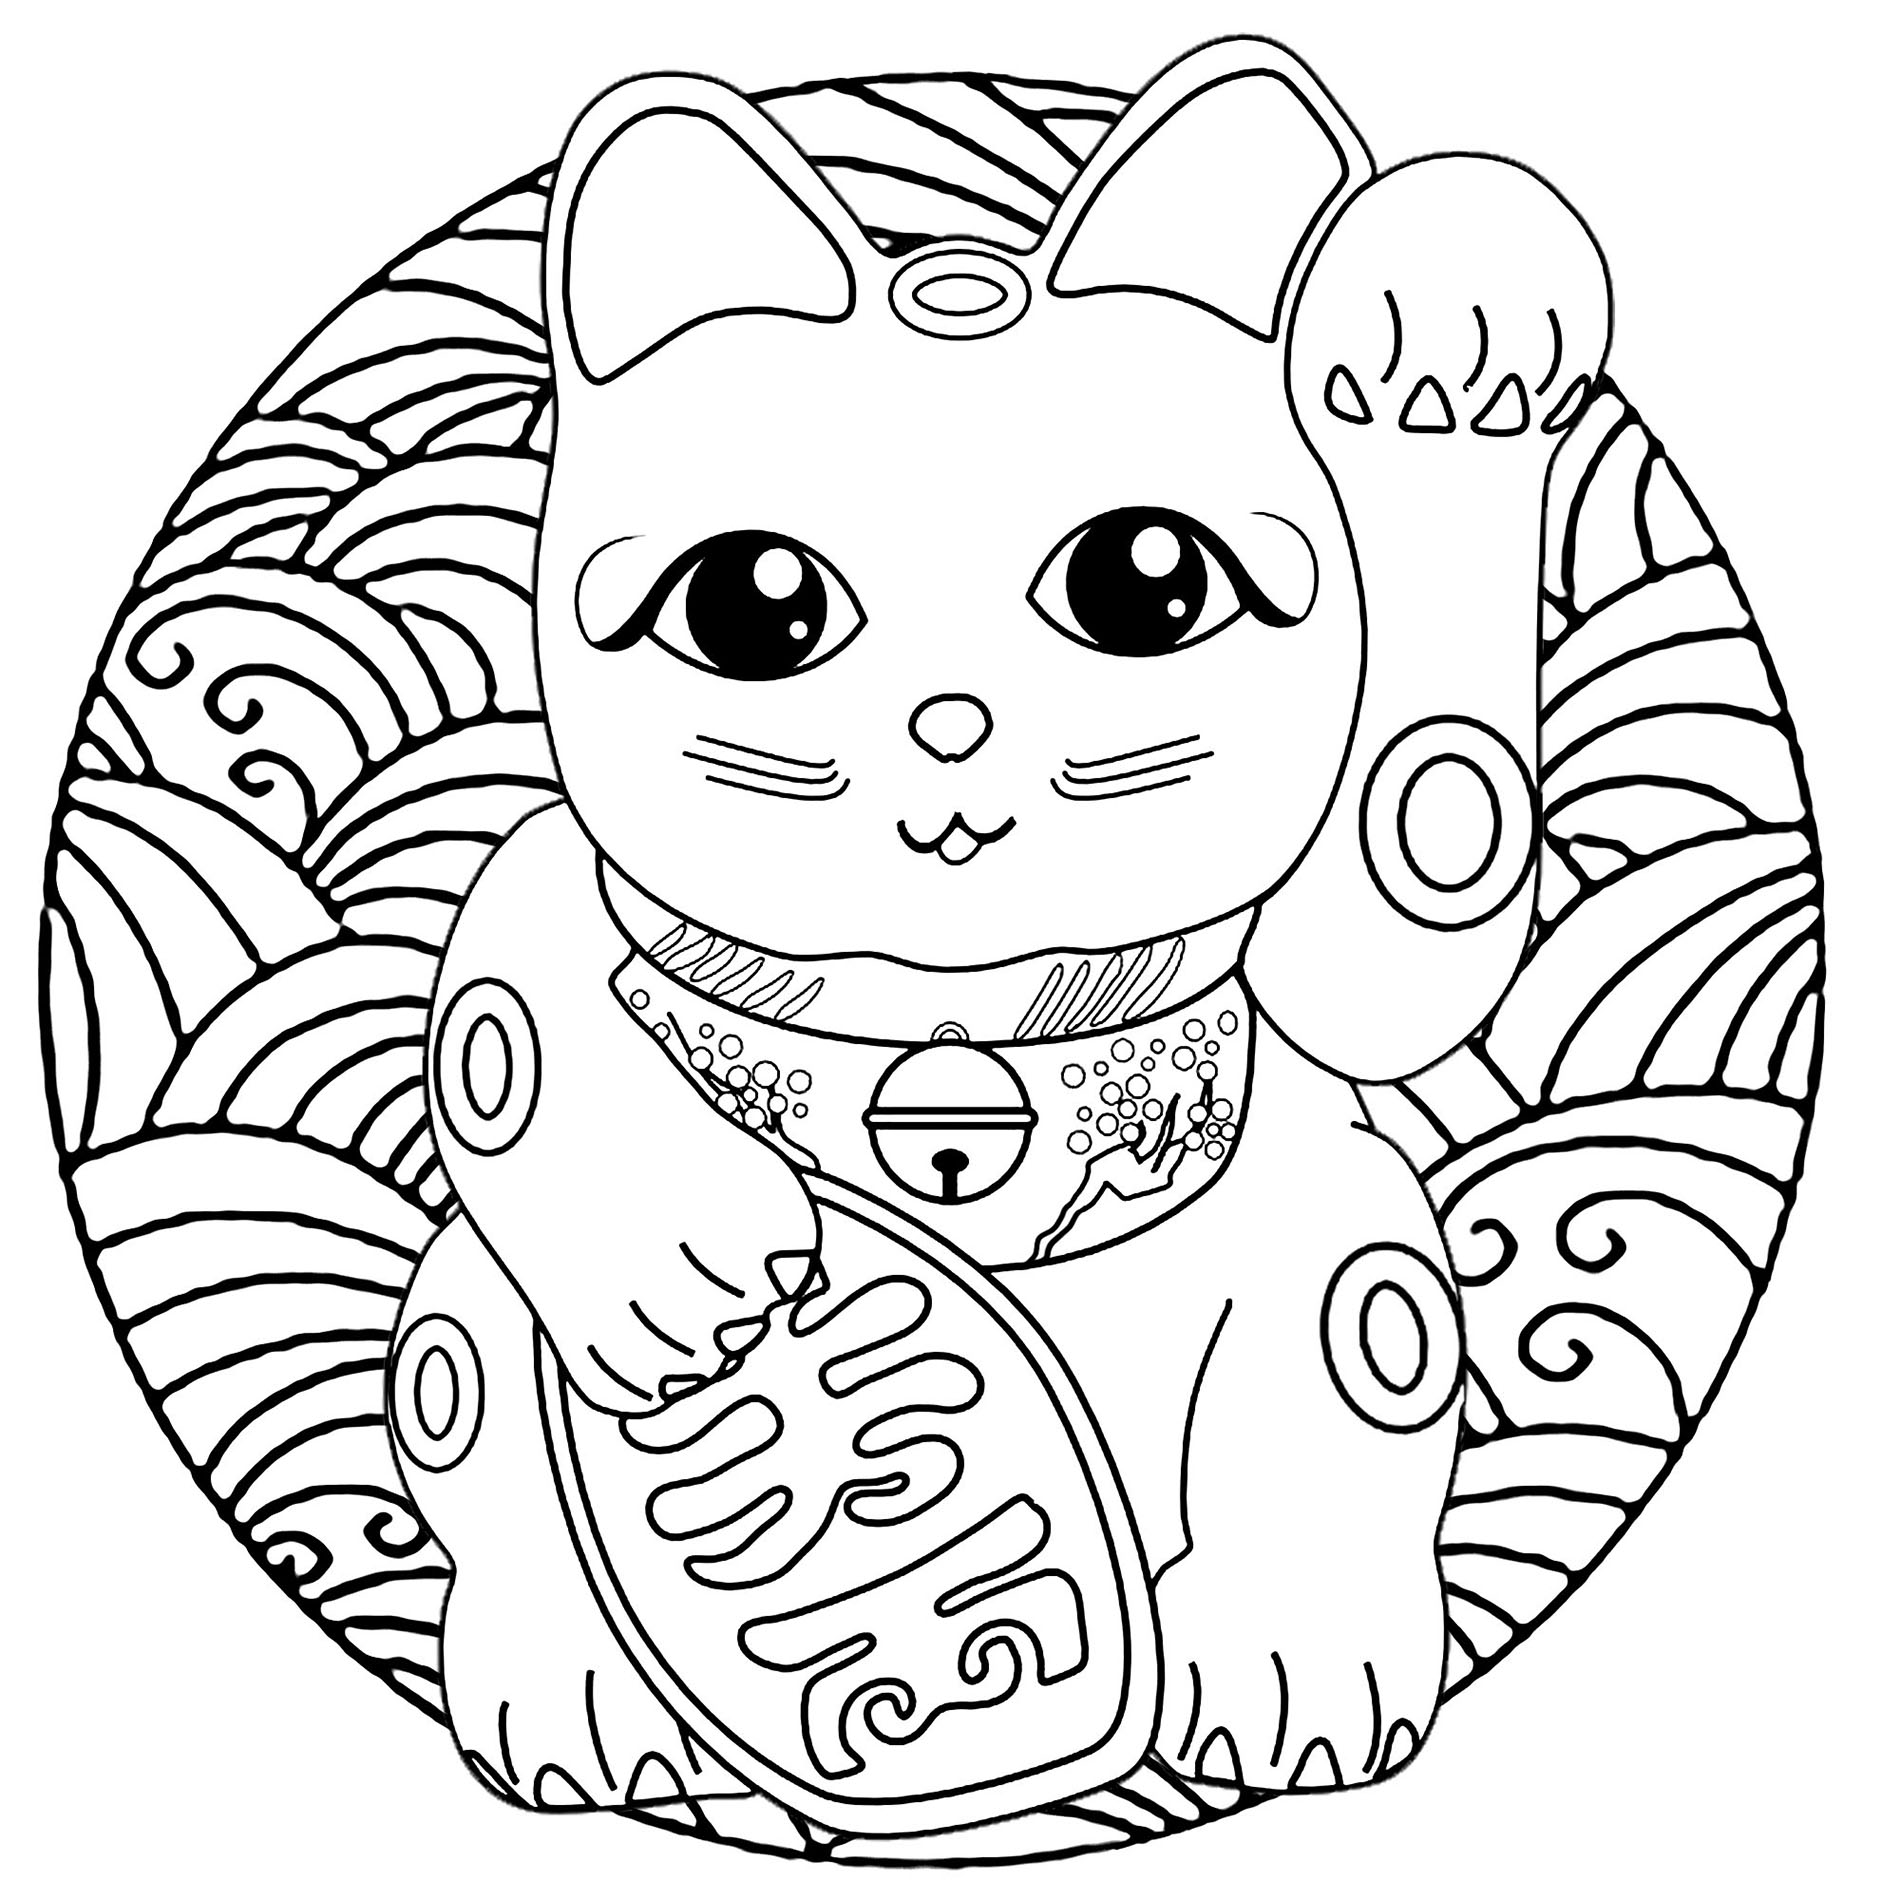 Funny free Maneki Neko coloring page to print and color